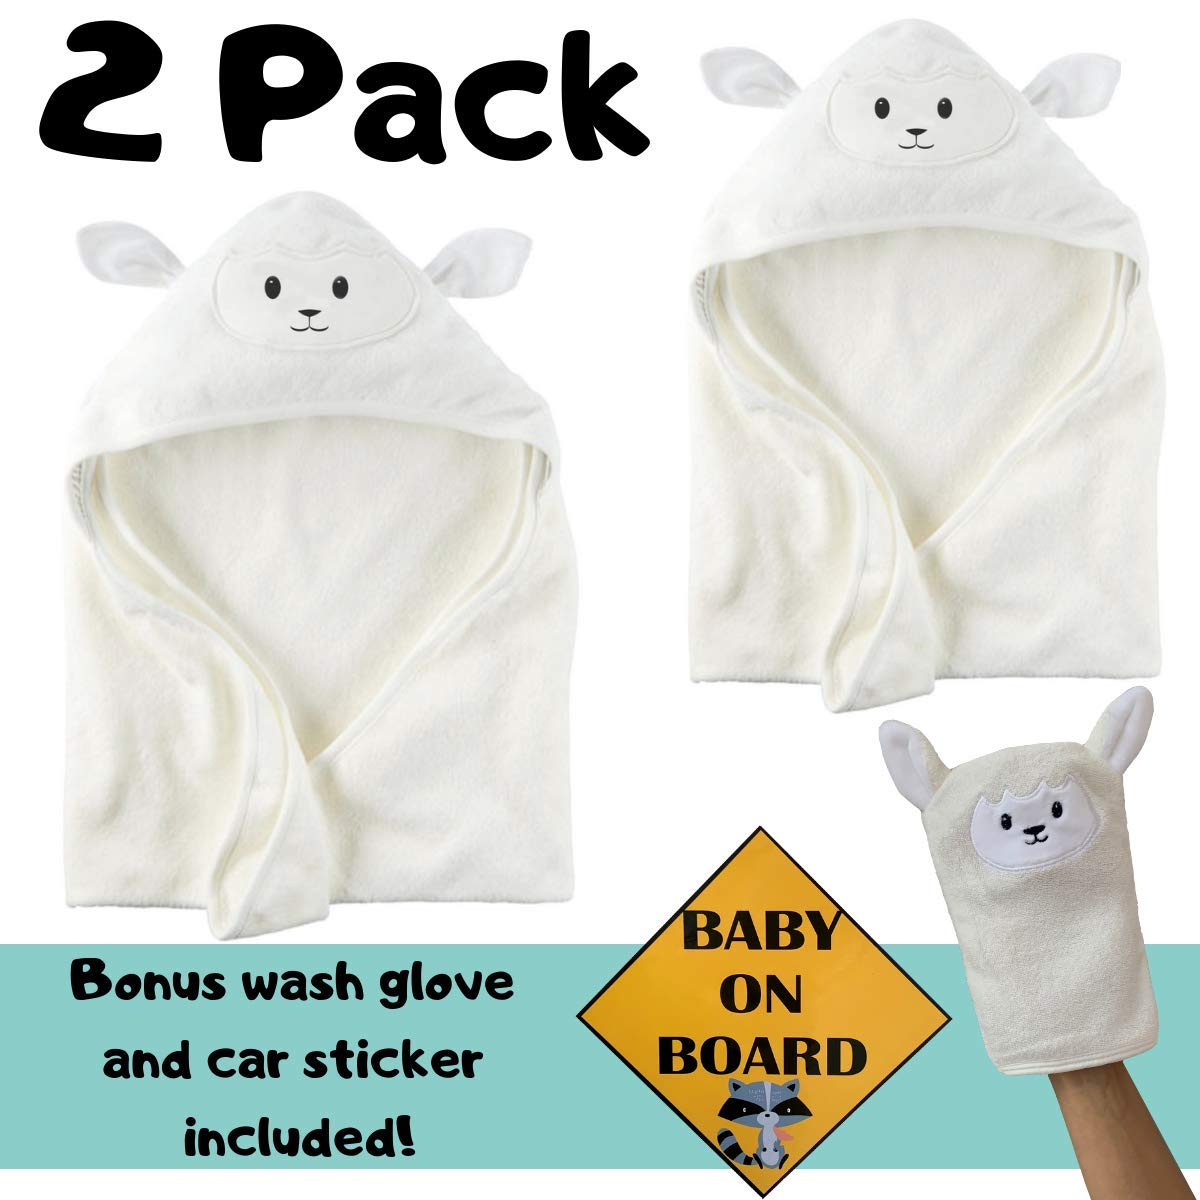 Organic Bamboo Baby Hooded Towel (2-Pack) | Bonus Wash Glove and Car Sticker | Ultra Soft and Super Absorbent Toddler Hooded Bath Towel with Cute Lamb Face Design | Great Infant/Newborn Shower Gift by Lucylla